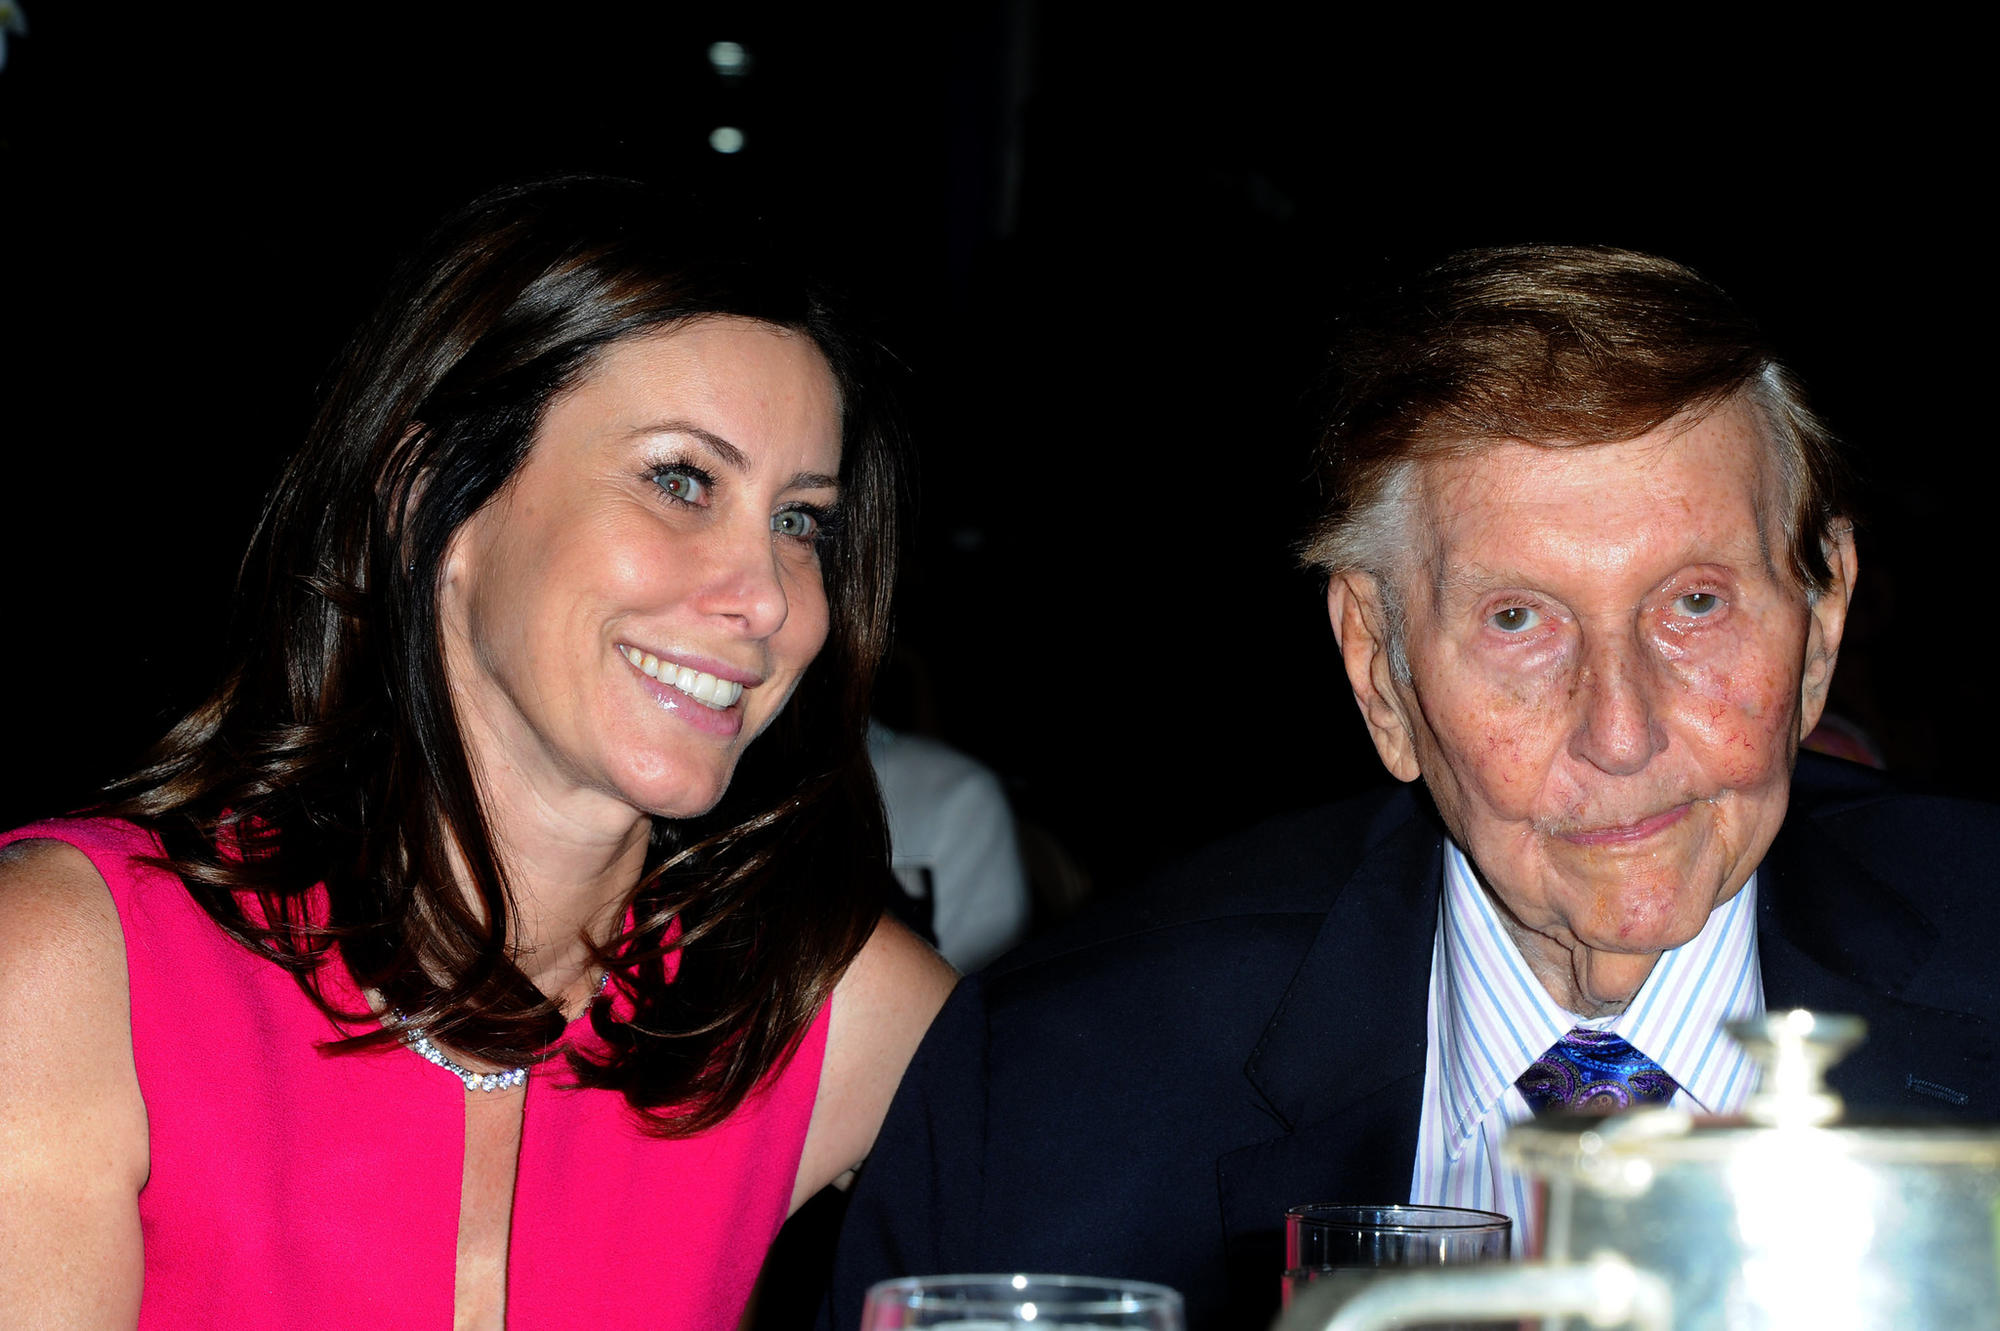 Sydney Holland and Sumner Redstone in 2012.